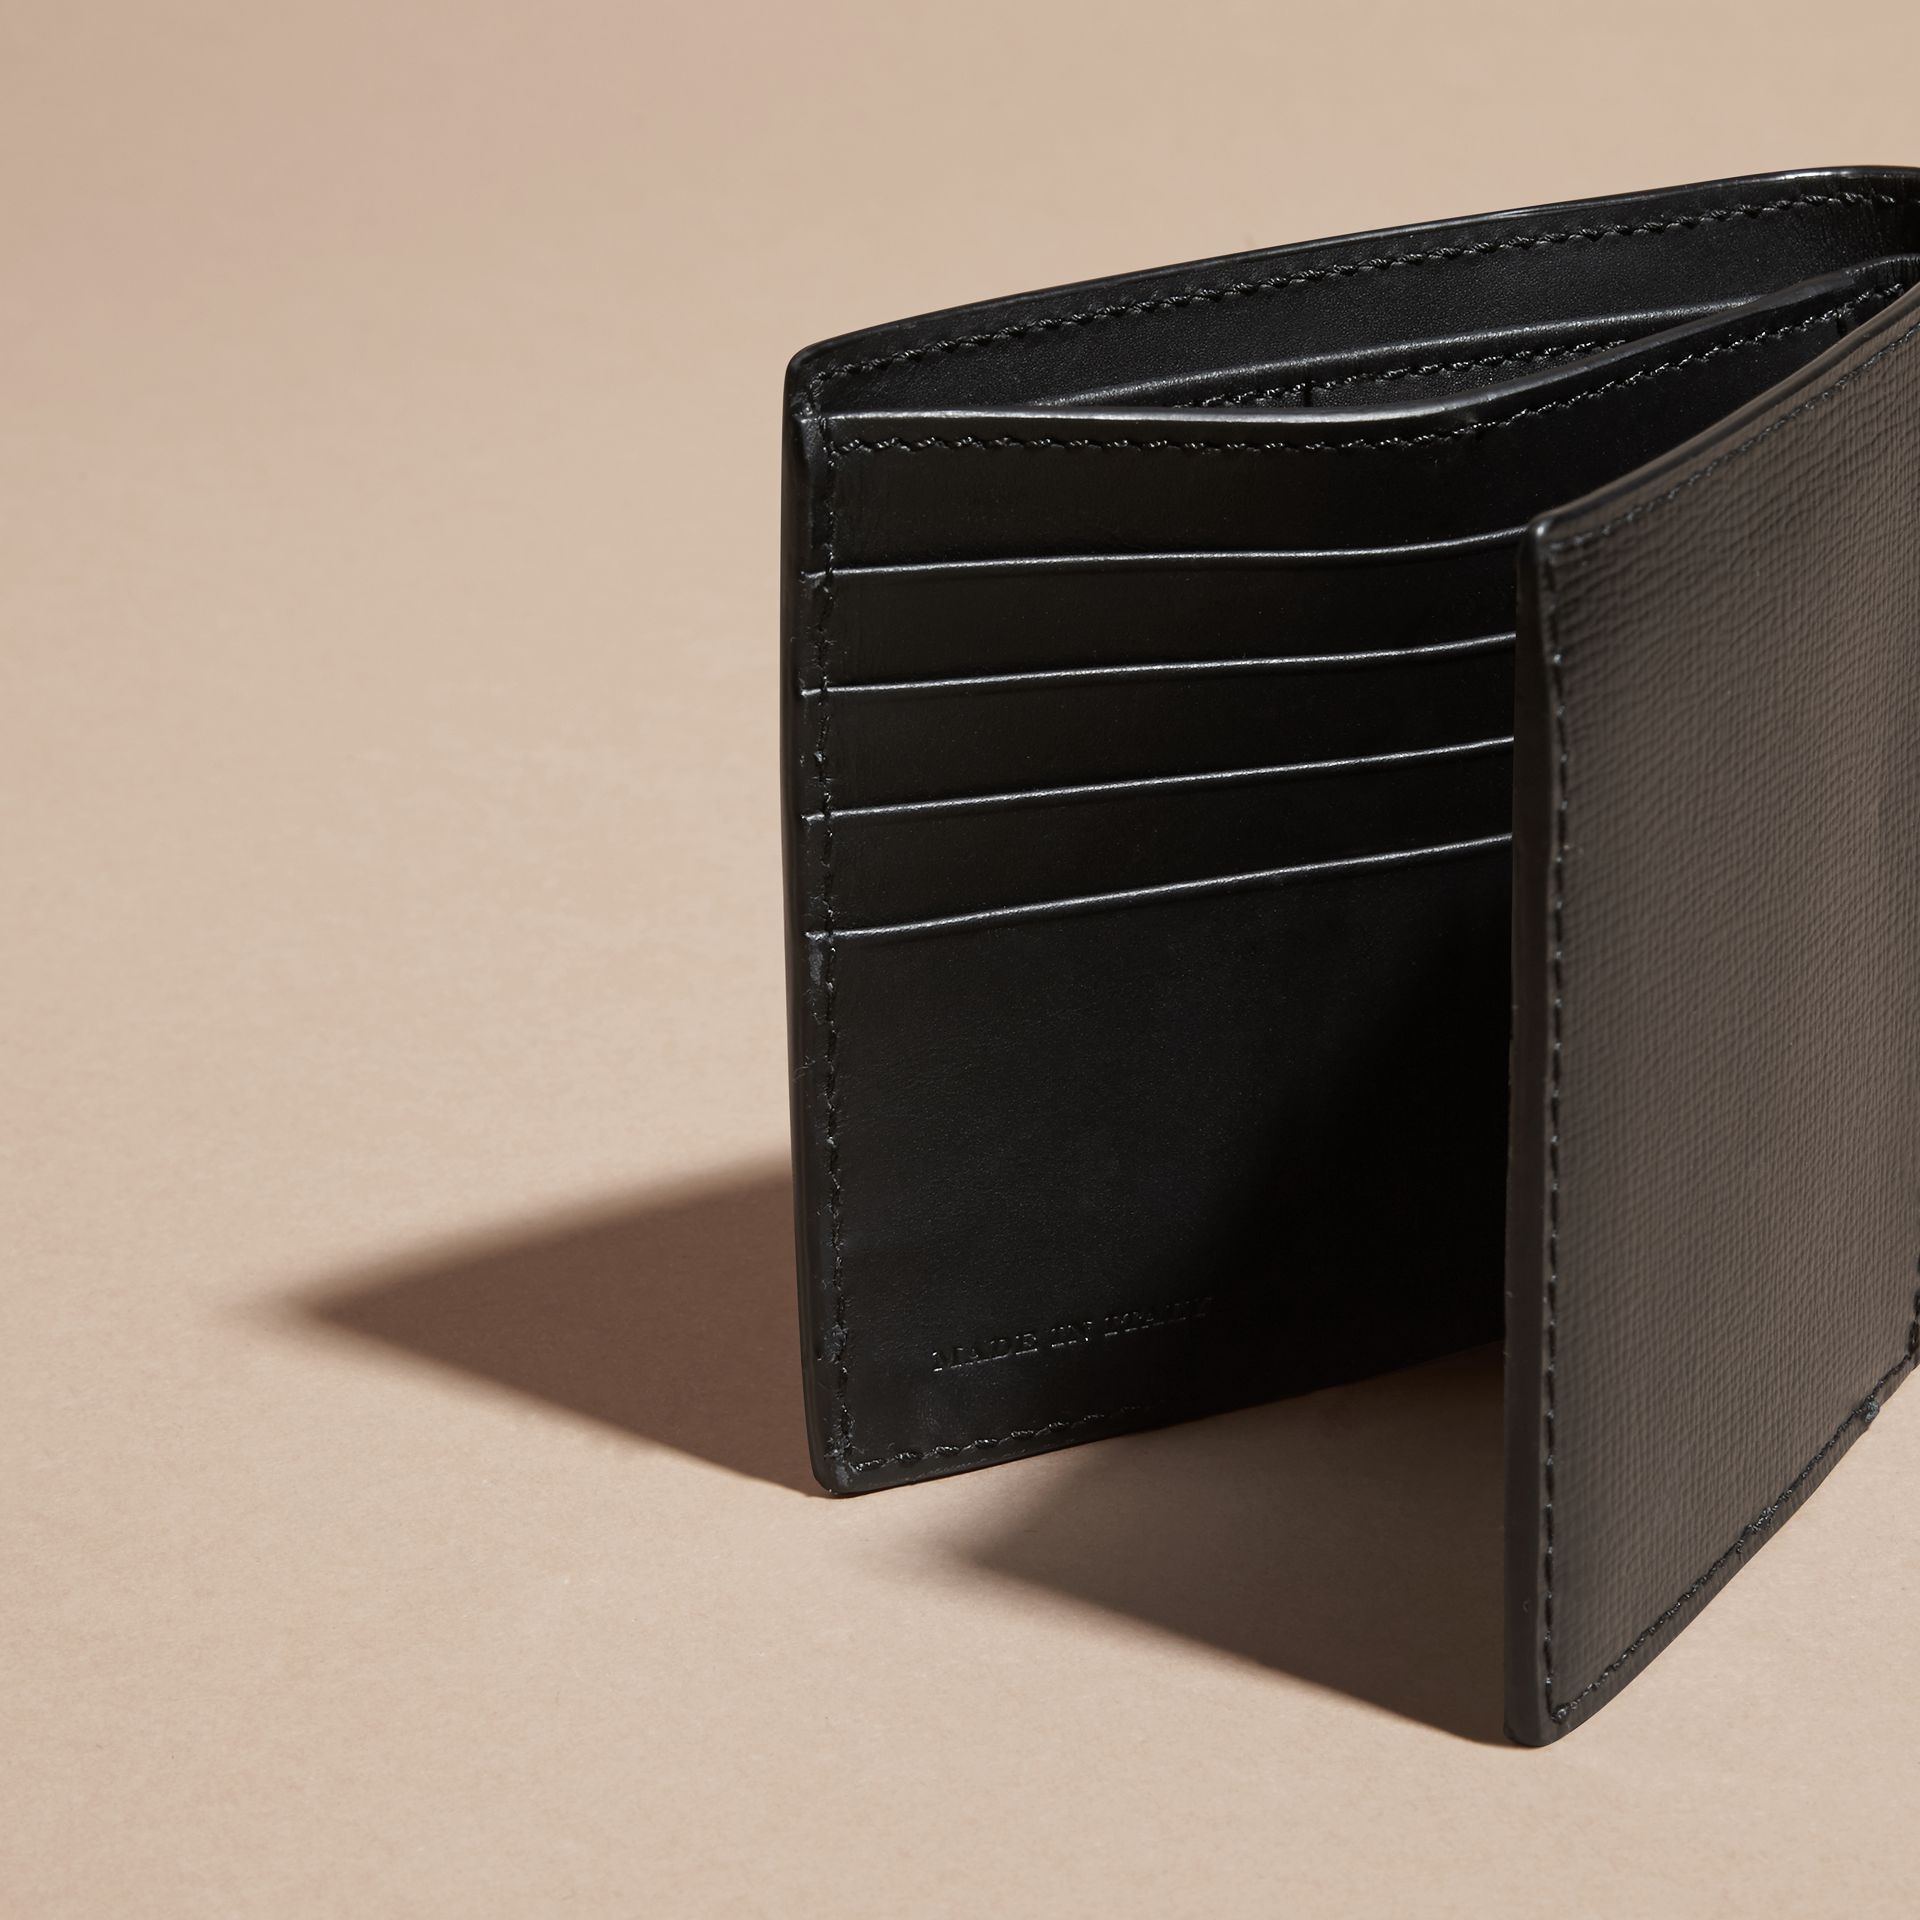 Black London Leather and Alligator Folding Wallet Black - gallery image 5